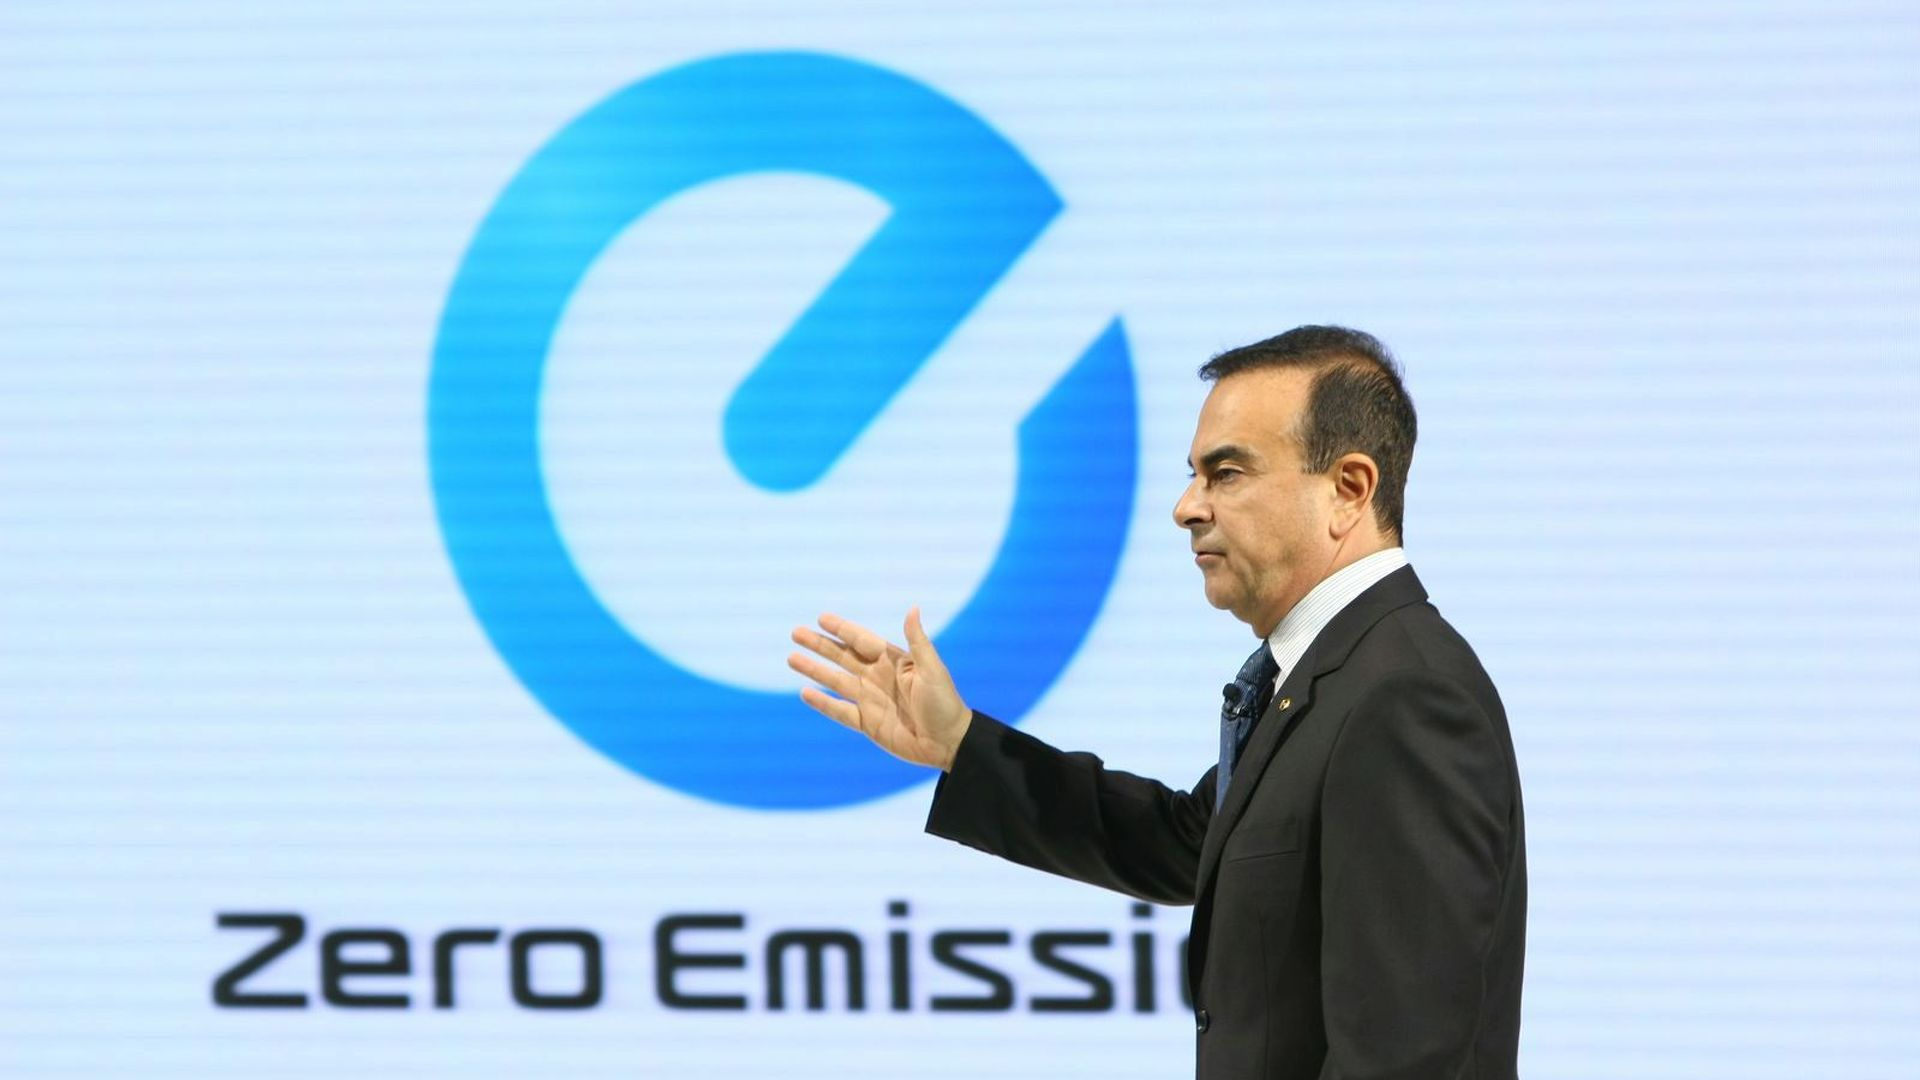 Nissan CEO Ghosn takes home $9.6M in pay despite earlier protests